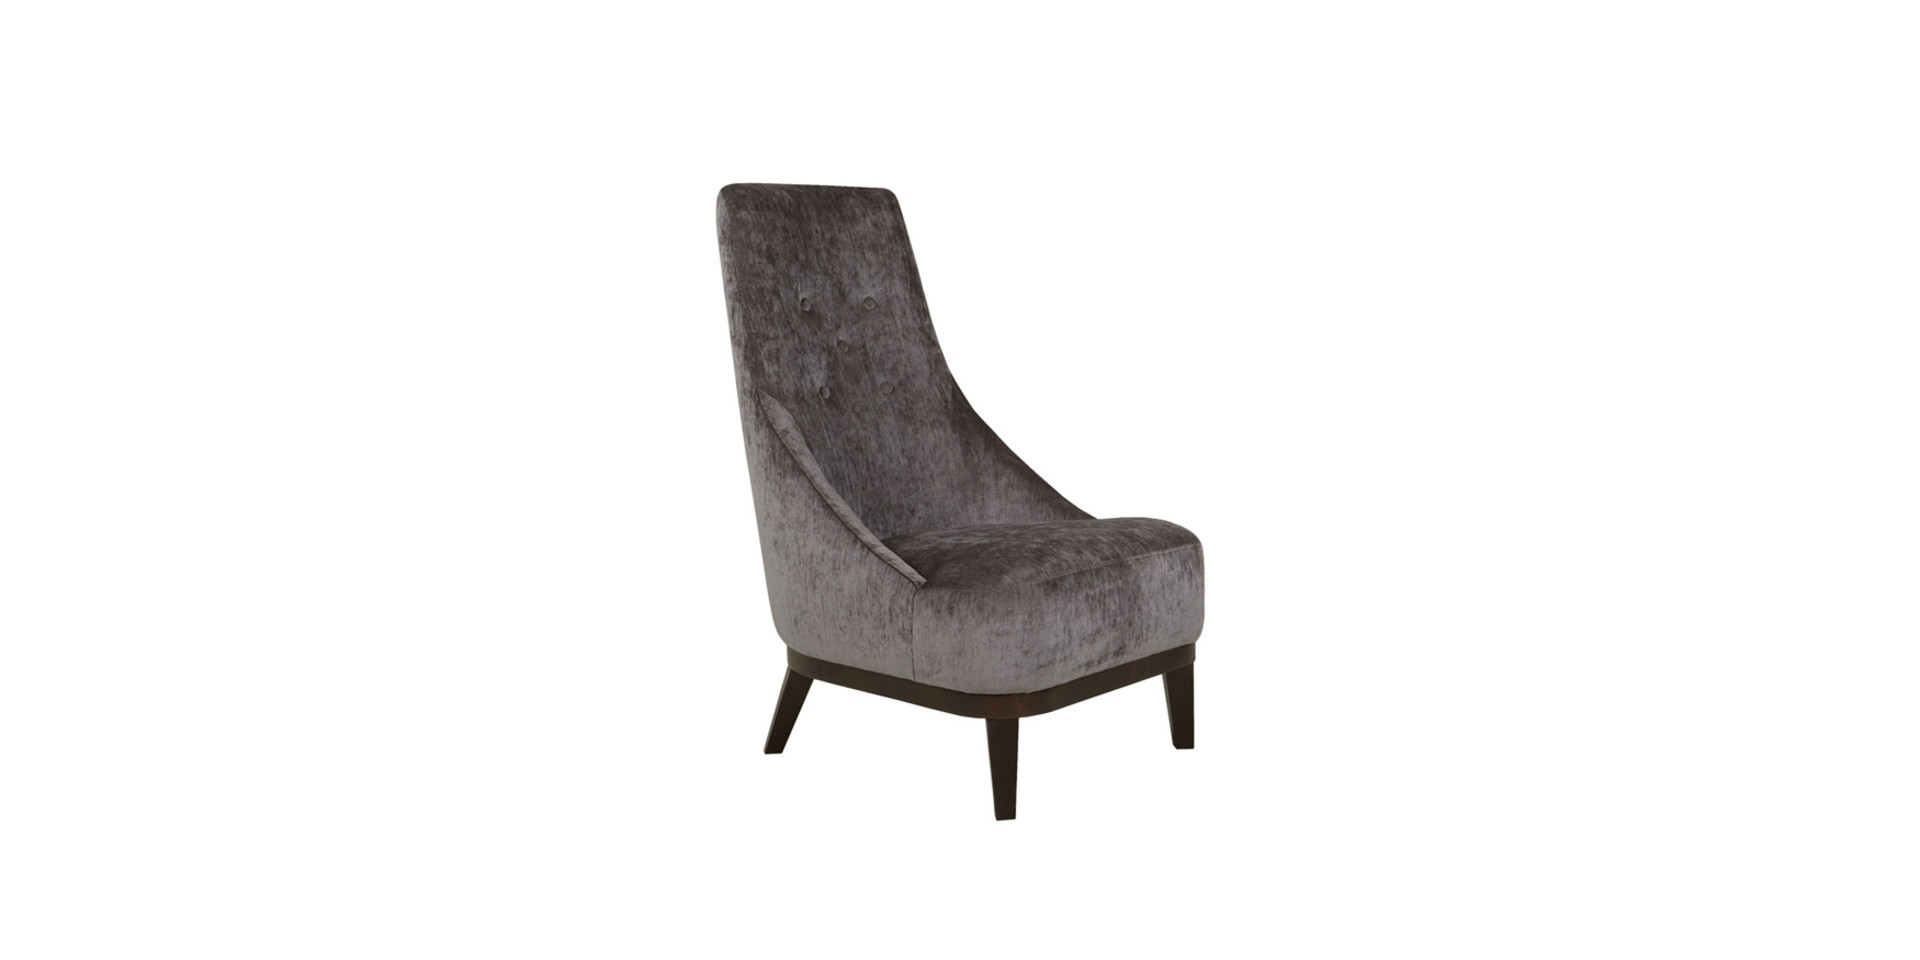 sits-donna-fauteuil-armchair_elyot2484_dark_grey_2_0